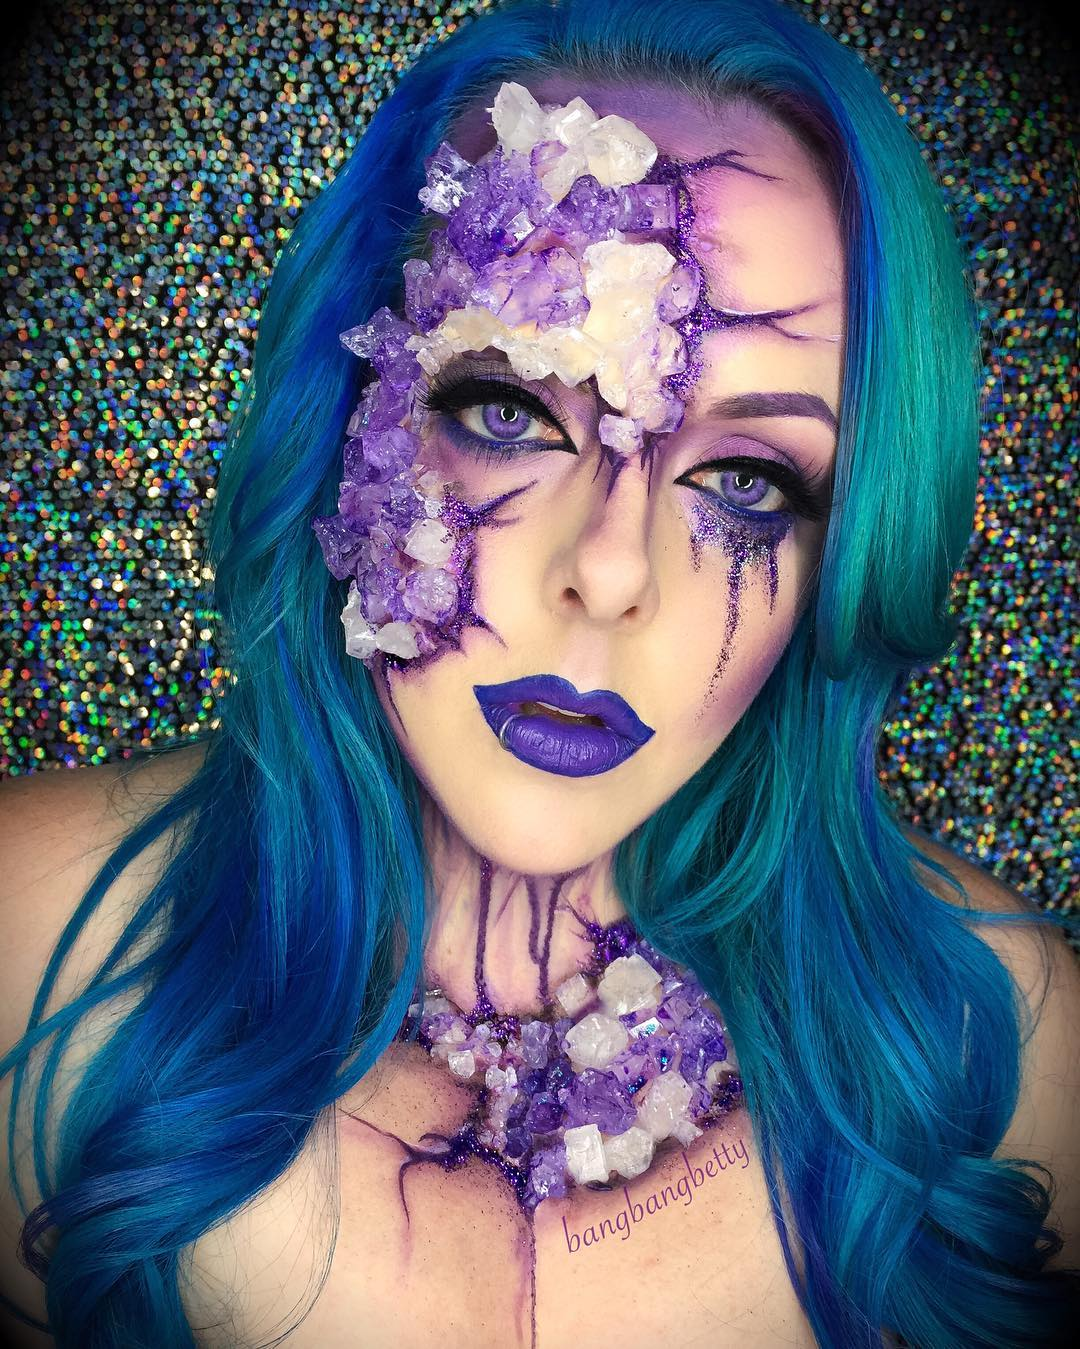 This woman transformed herself into an amethyst for Halloween, her look is a total gem